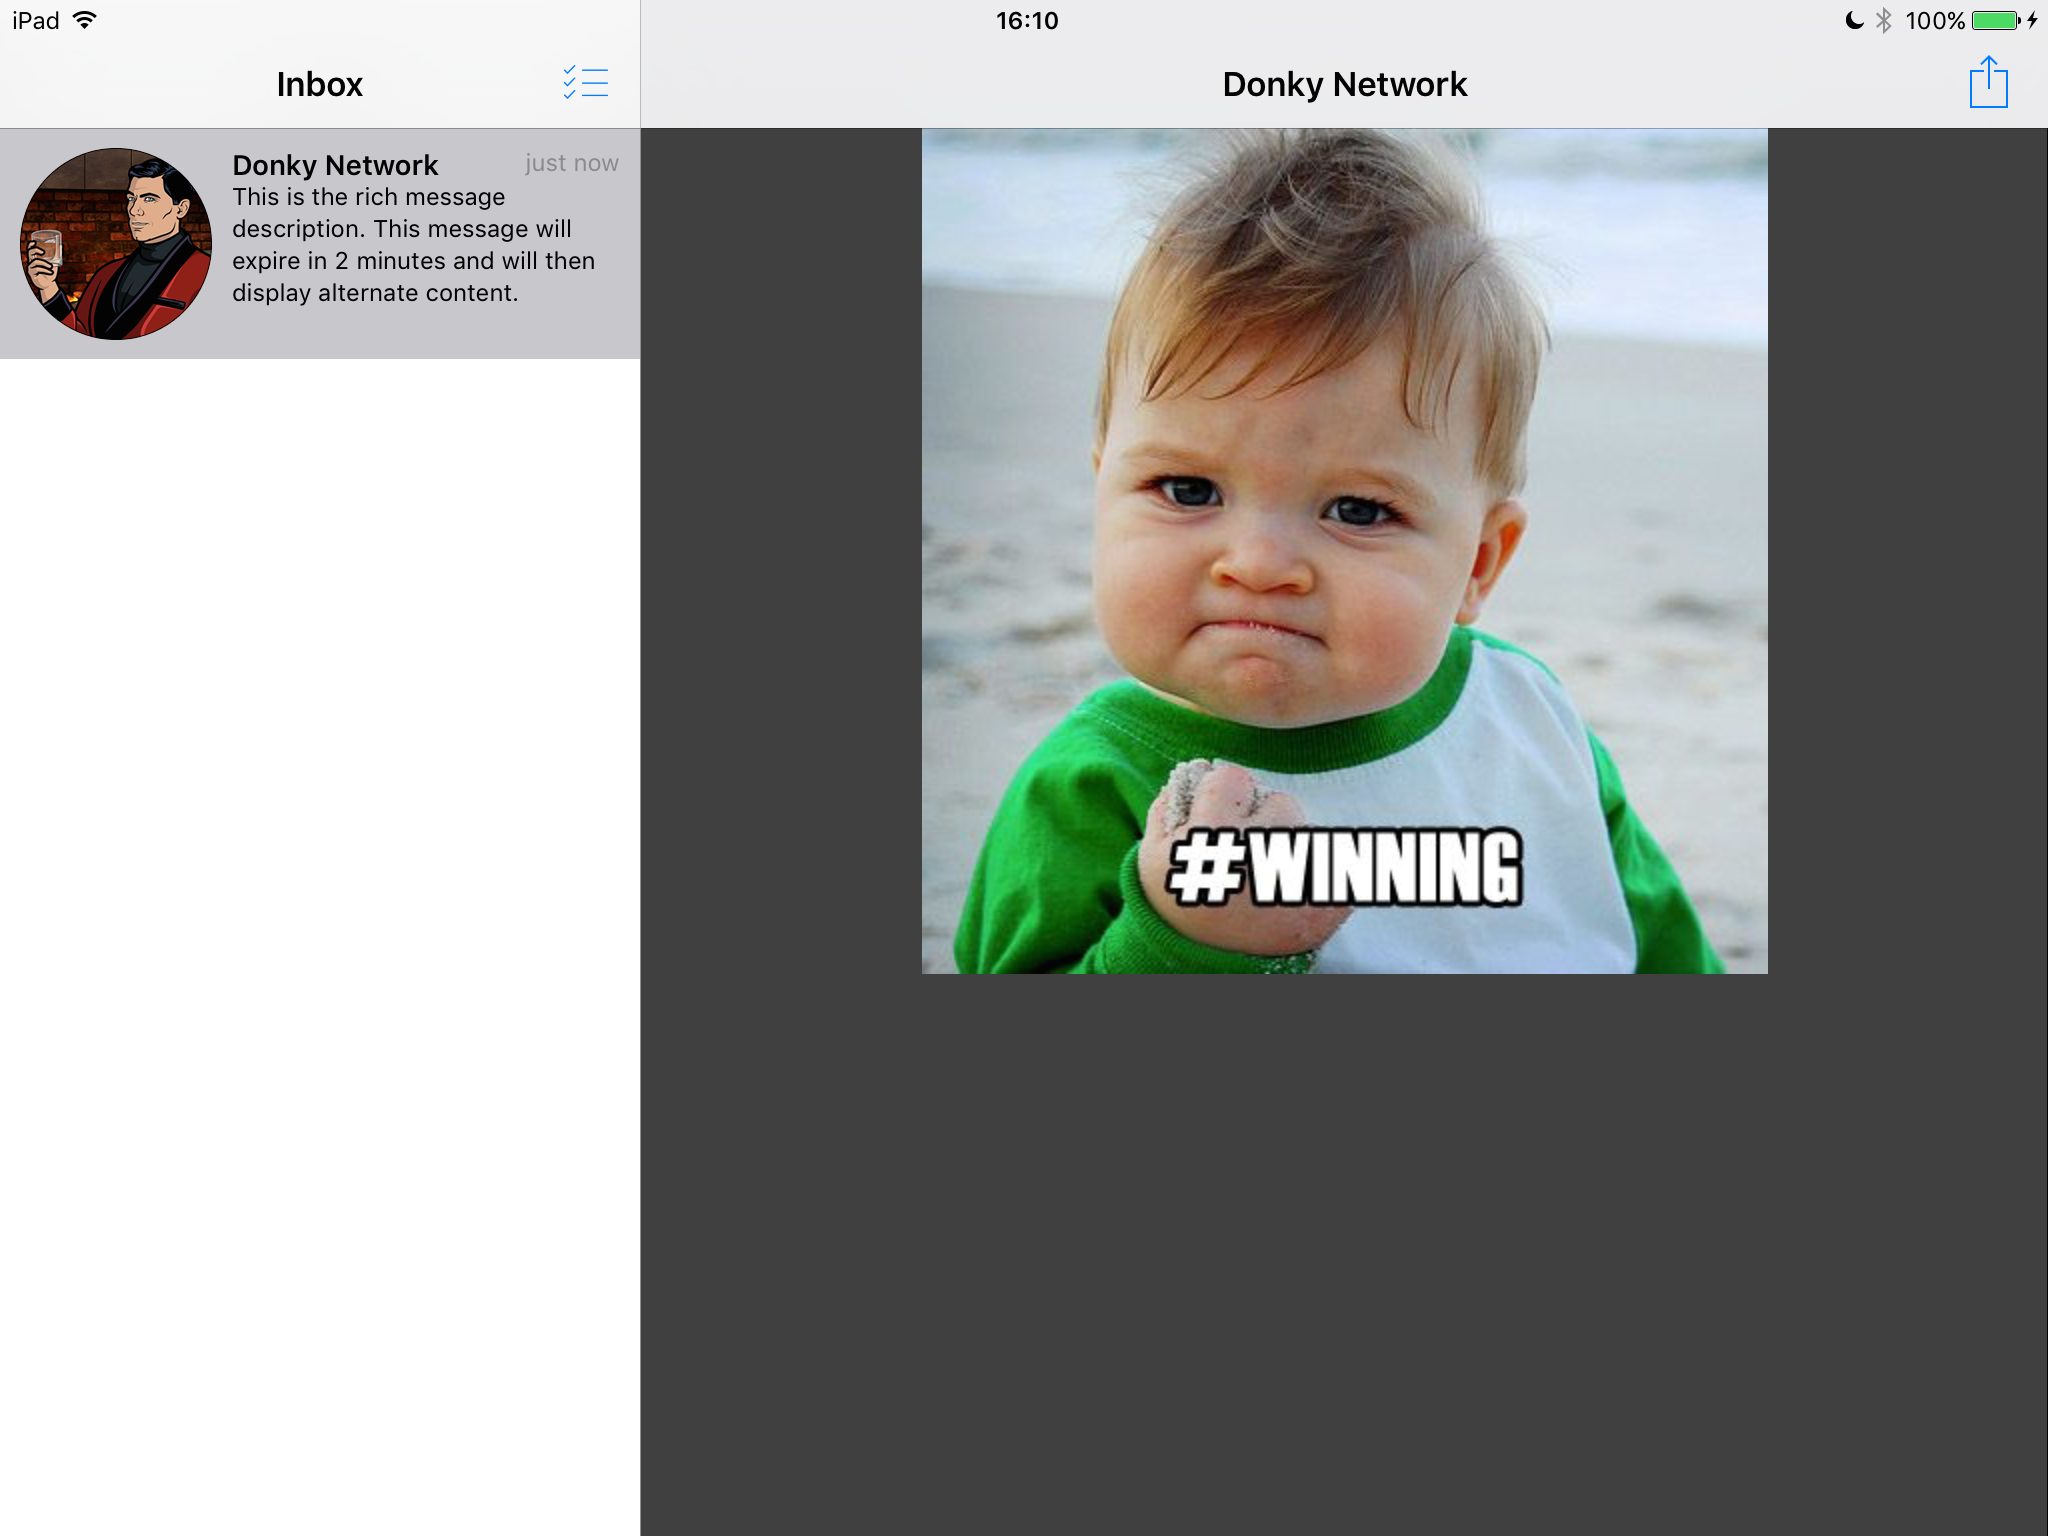 An example of a selected rich message in a Split View controller on an iPad, iOS 7.0 in Landscape.